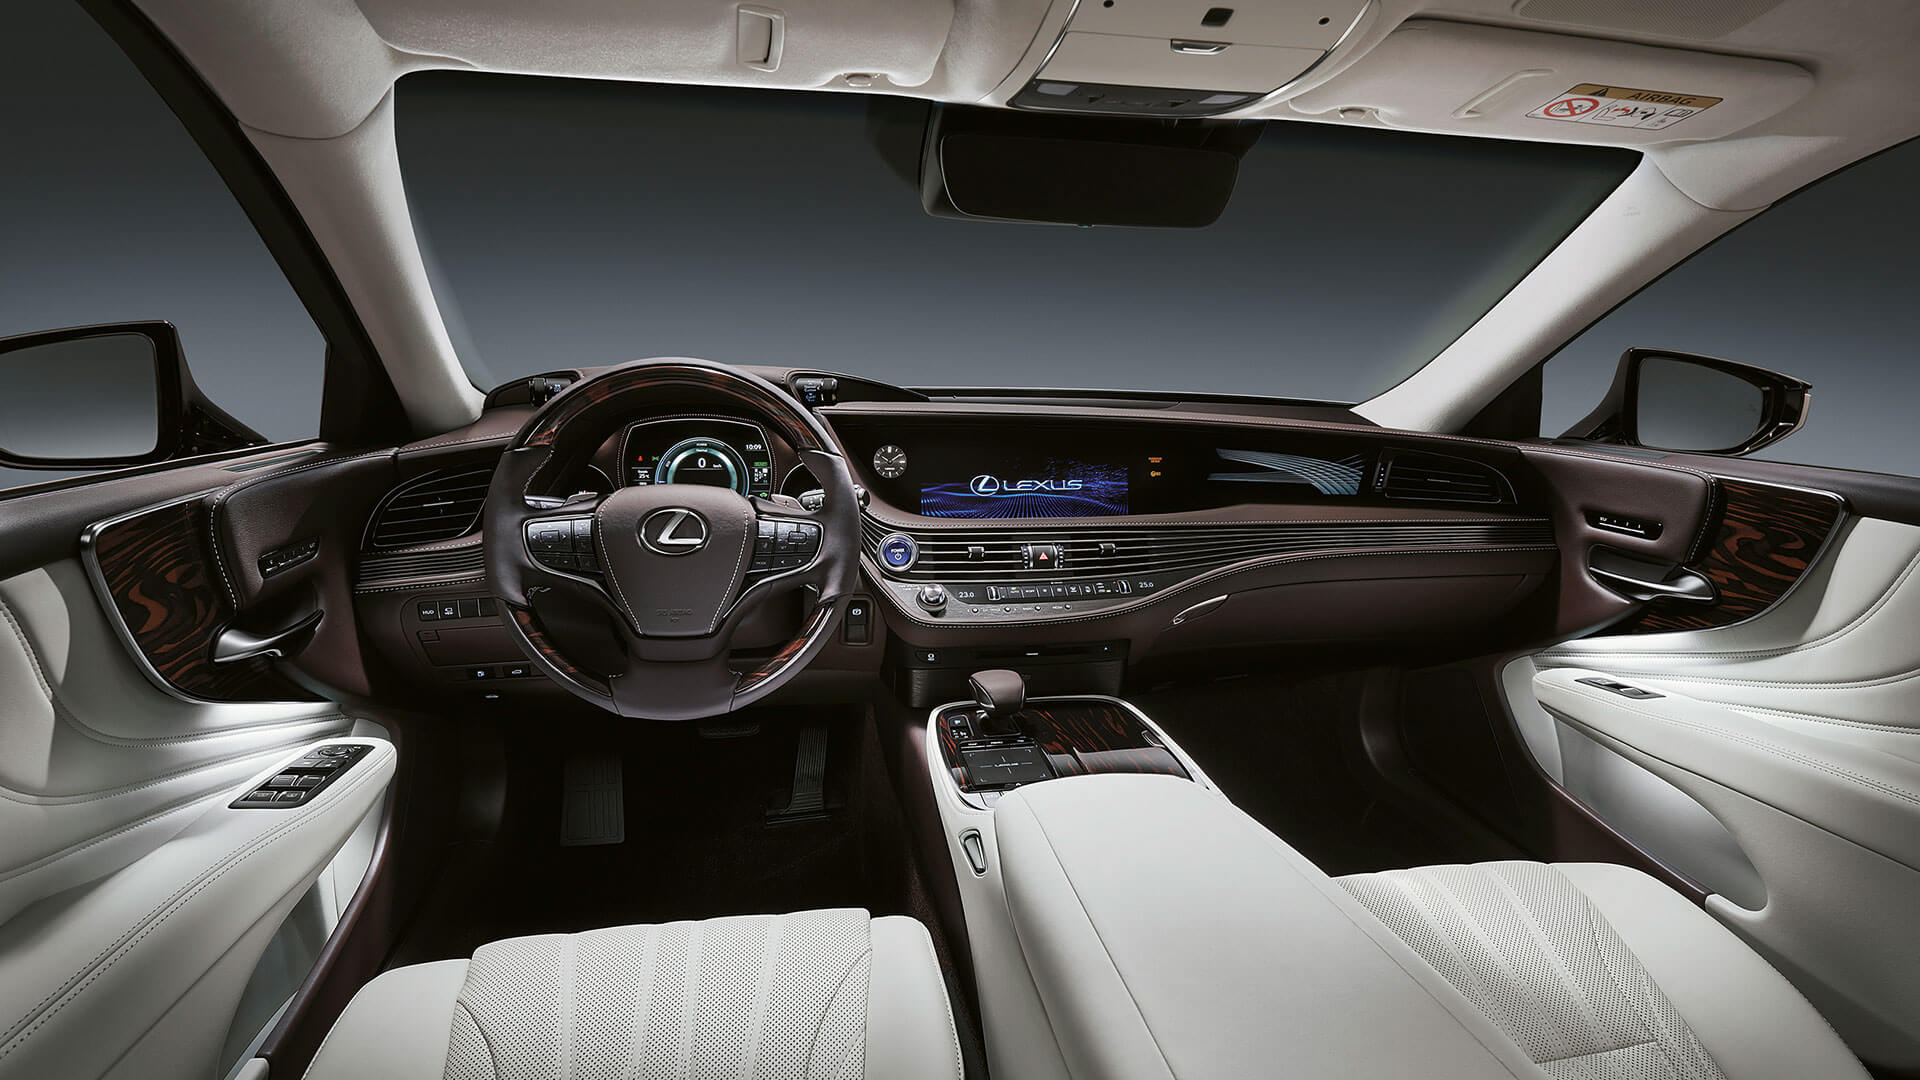 2018 lexus ls features driver focused cockpit